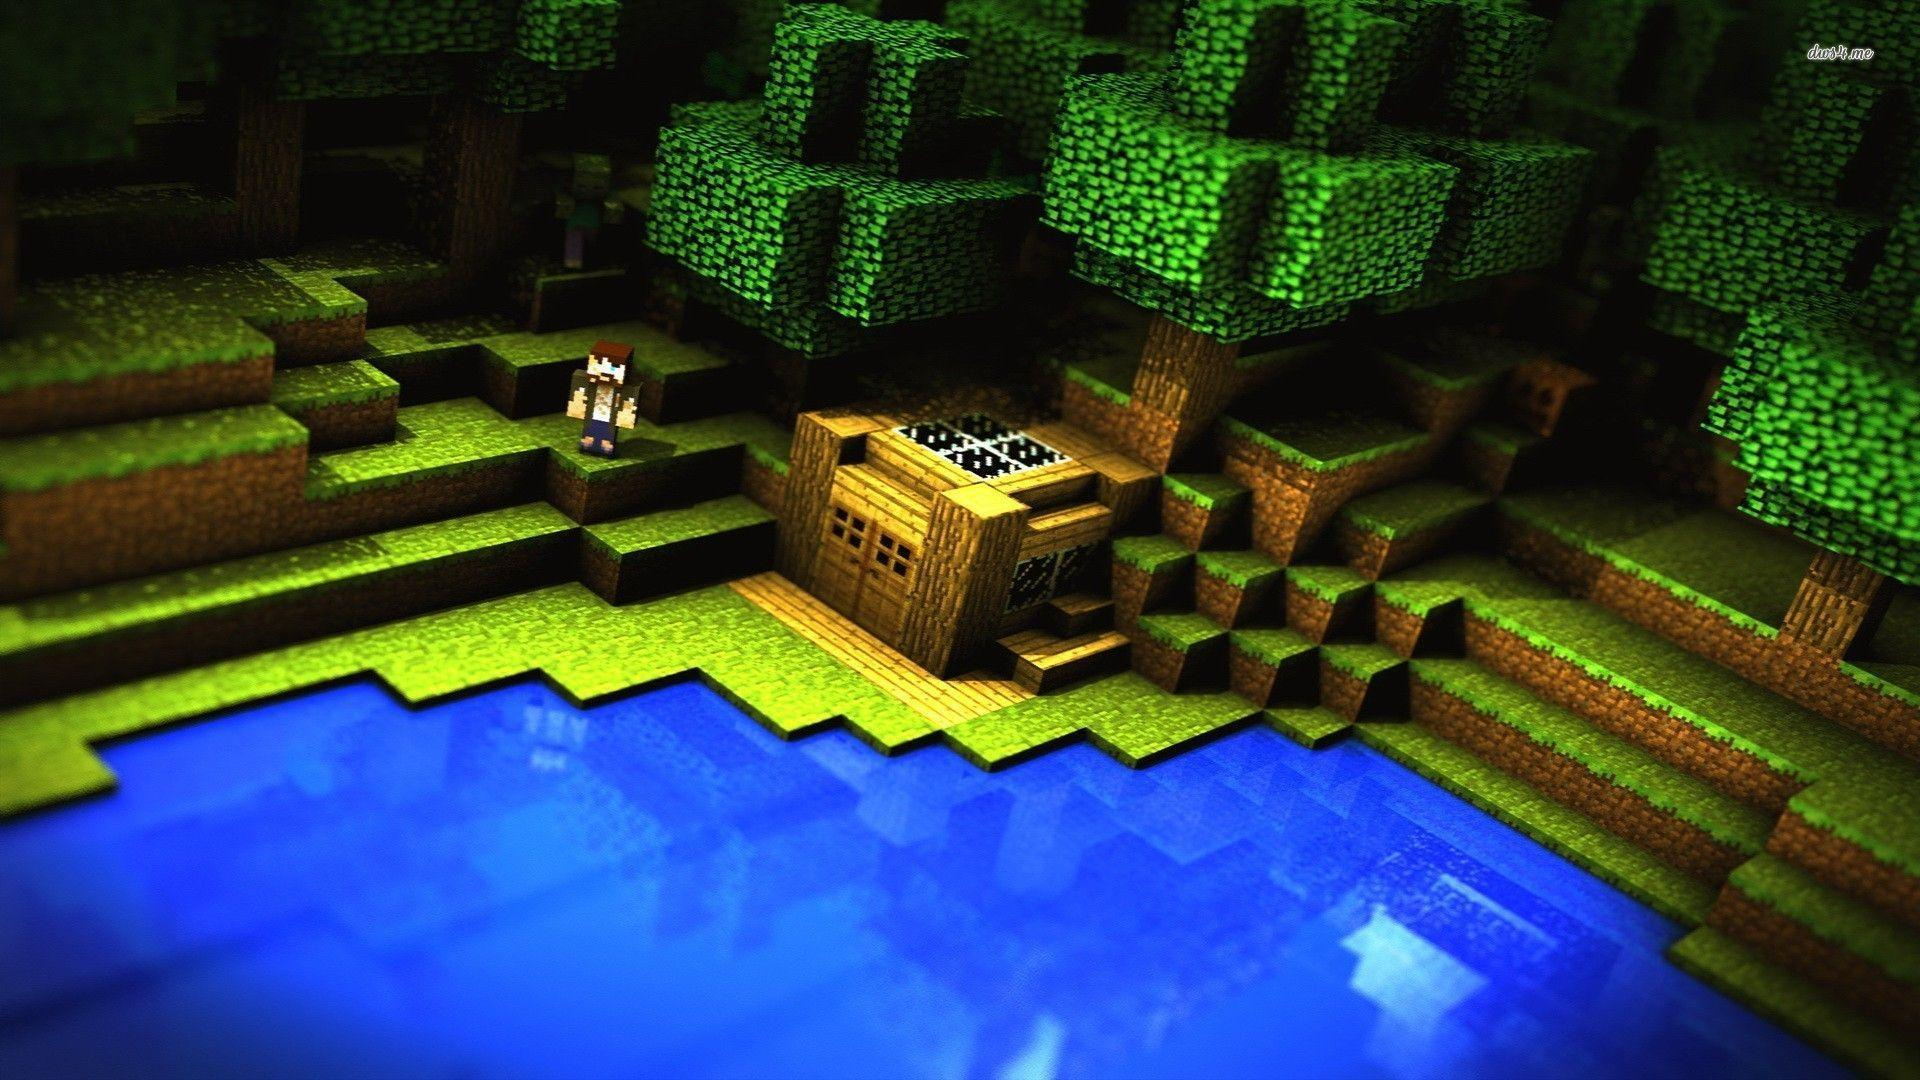 wallpaper hd minecraft green - photo #44